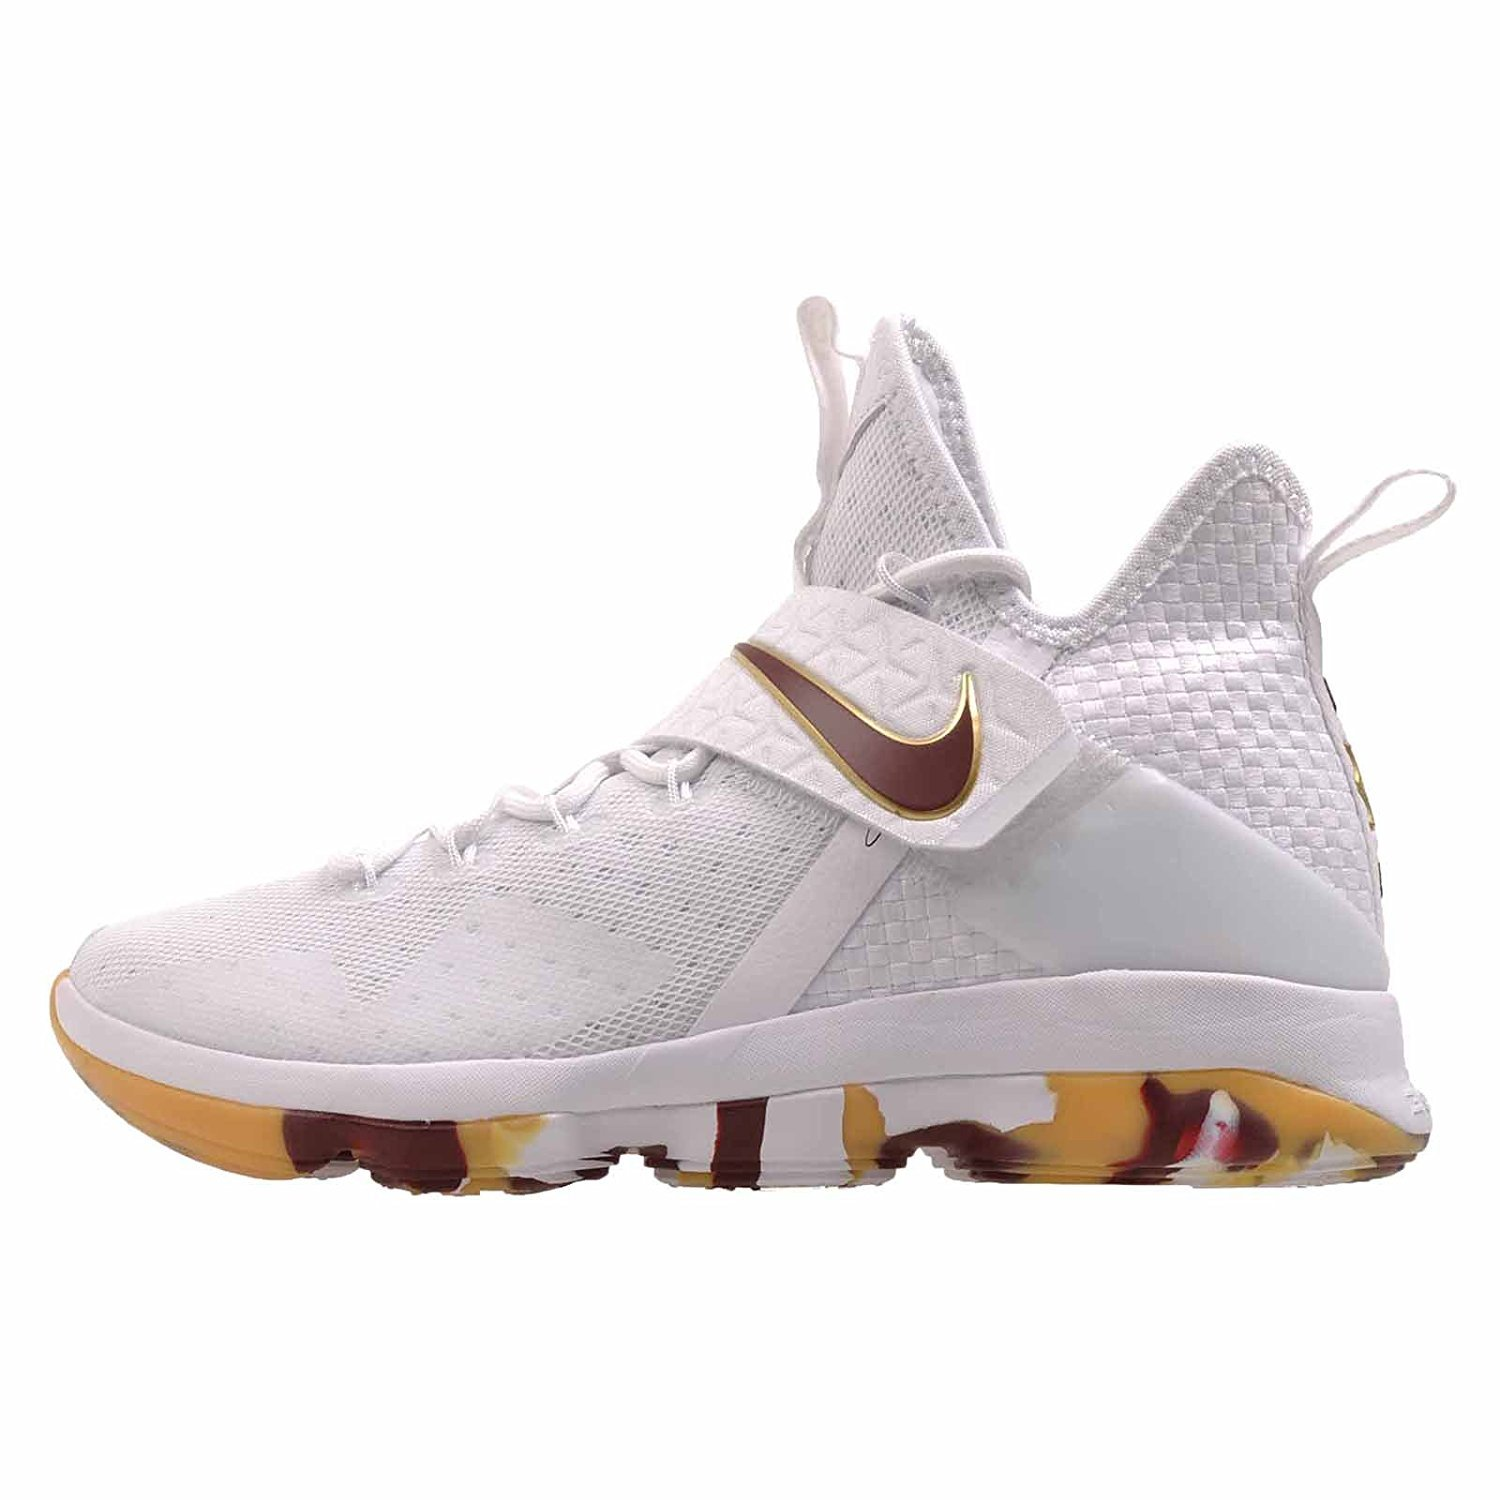 b2c084cc2fc5 Nike Lebron XIV Men s Basketball Shoes (10)  Amazon.in  Shoes   Handbags